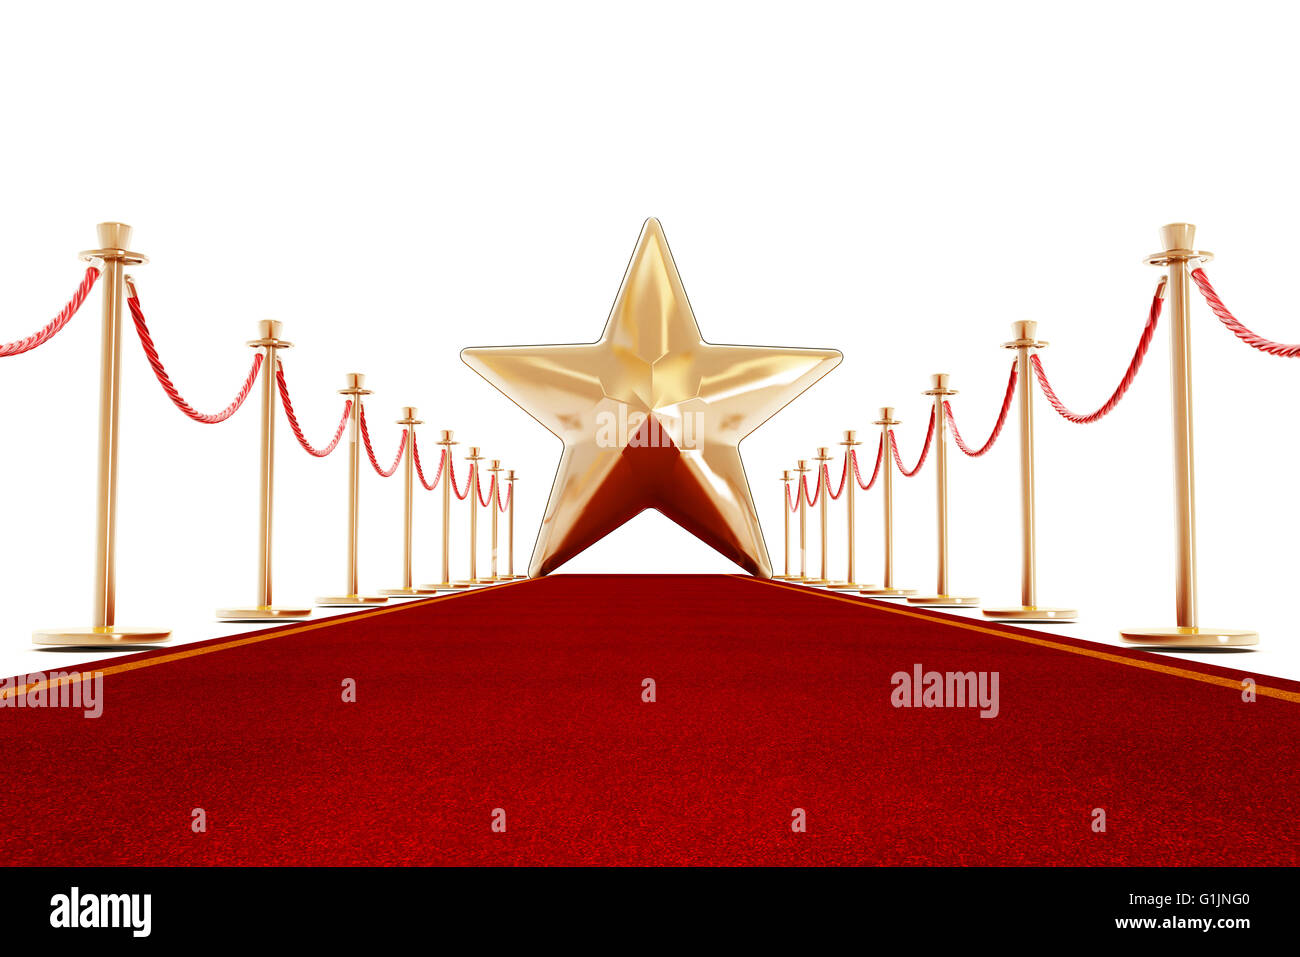 Red carpet and velvet ropes with a golden star shape at the end of the lane. - Stock Image